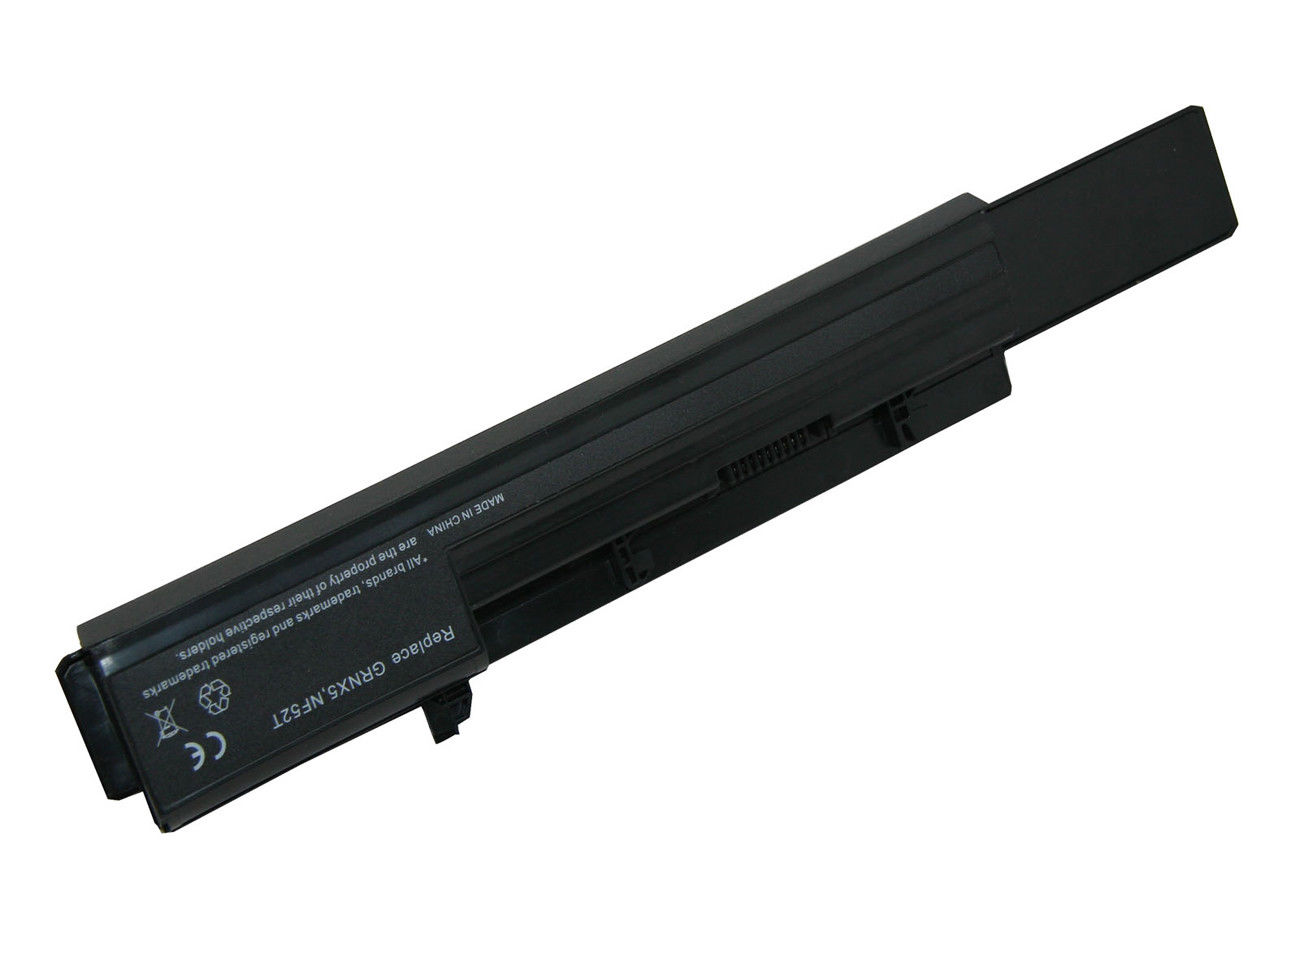 Replacement Dell 0XXDG0 Battery